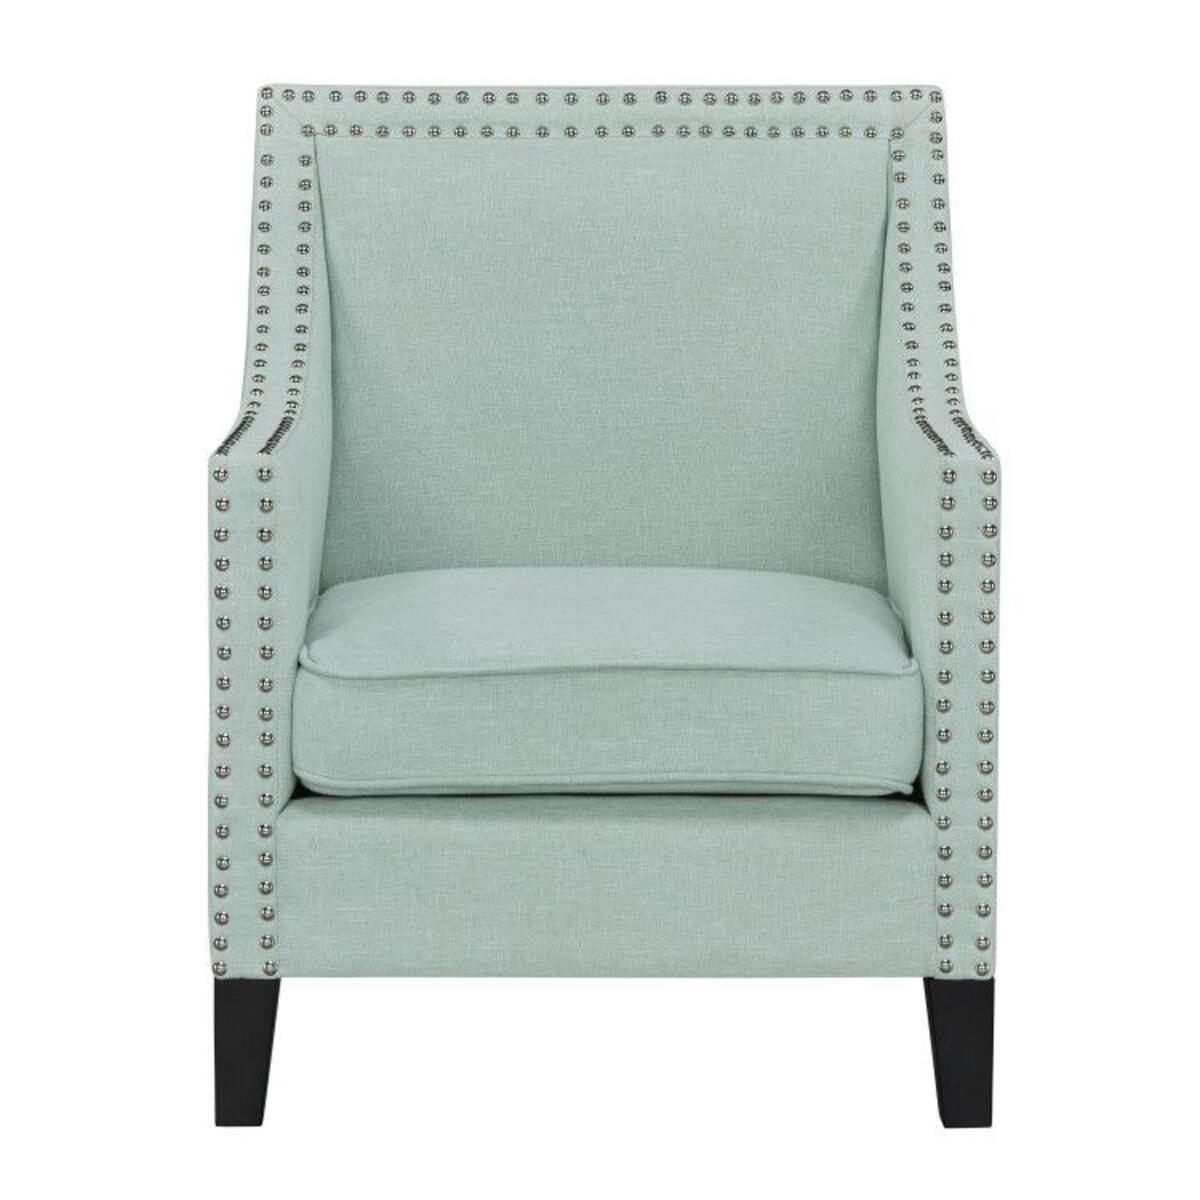 Hailey Accent Chair, Celadon